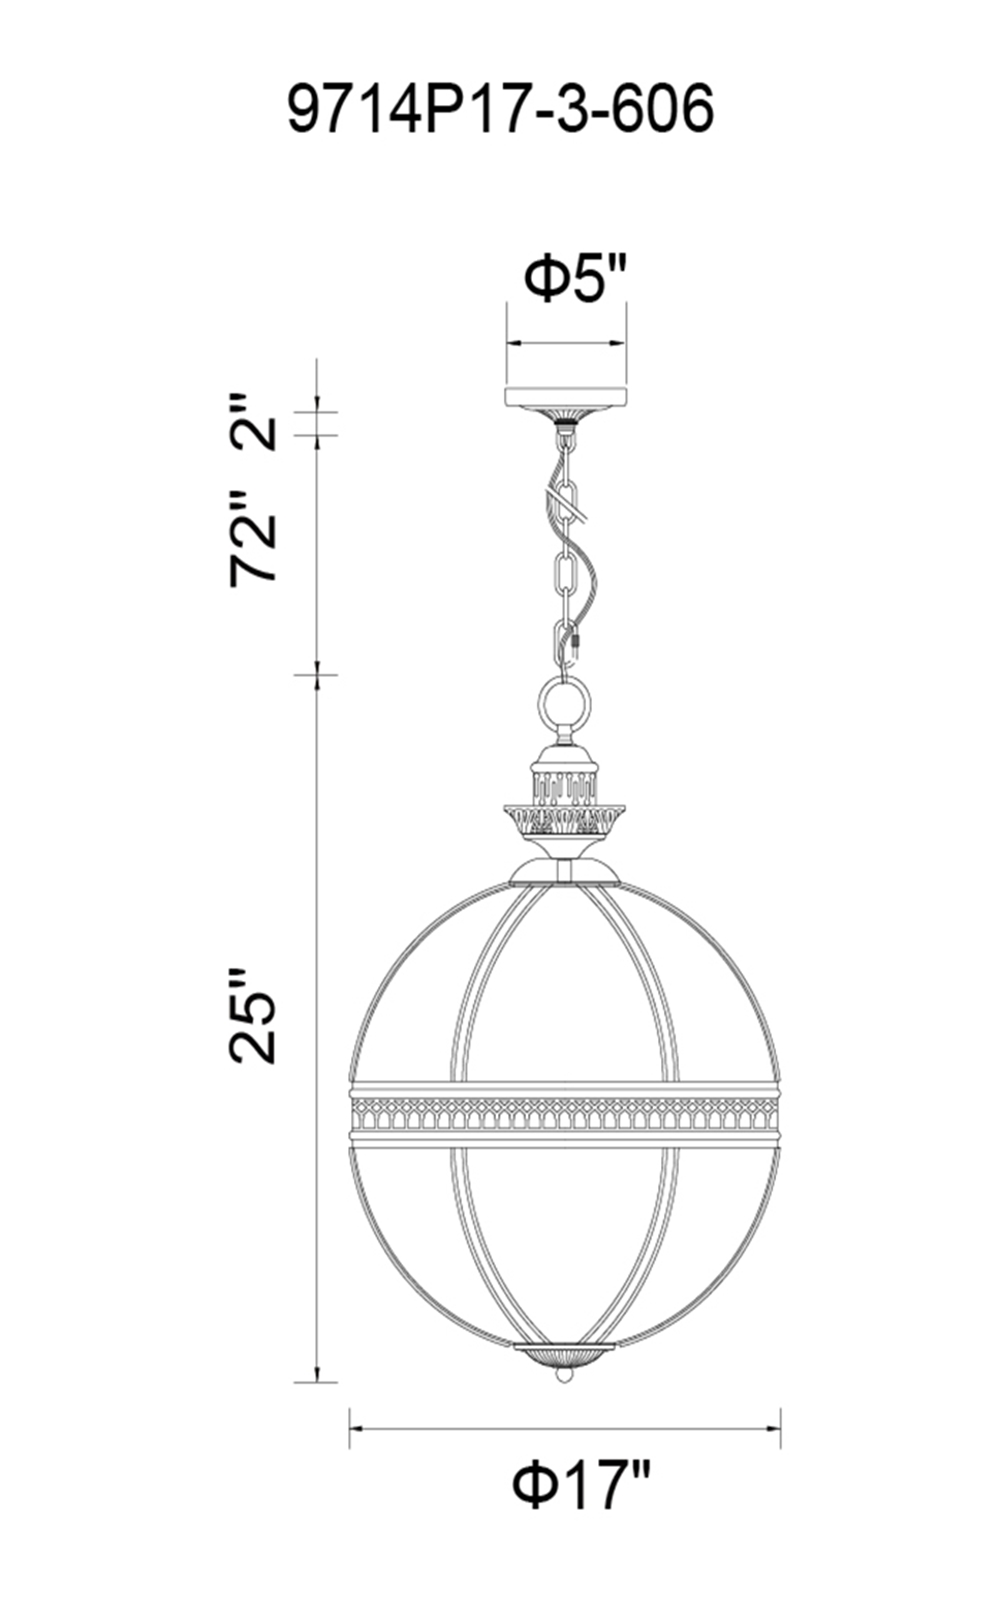 CWI Lighting Lune 3 Light Up Chandelier With Satin Nickel Model: 9714P17-3-606 Line Drawing